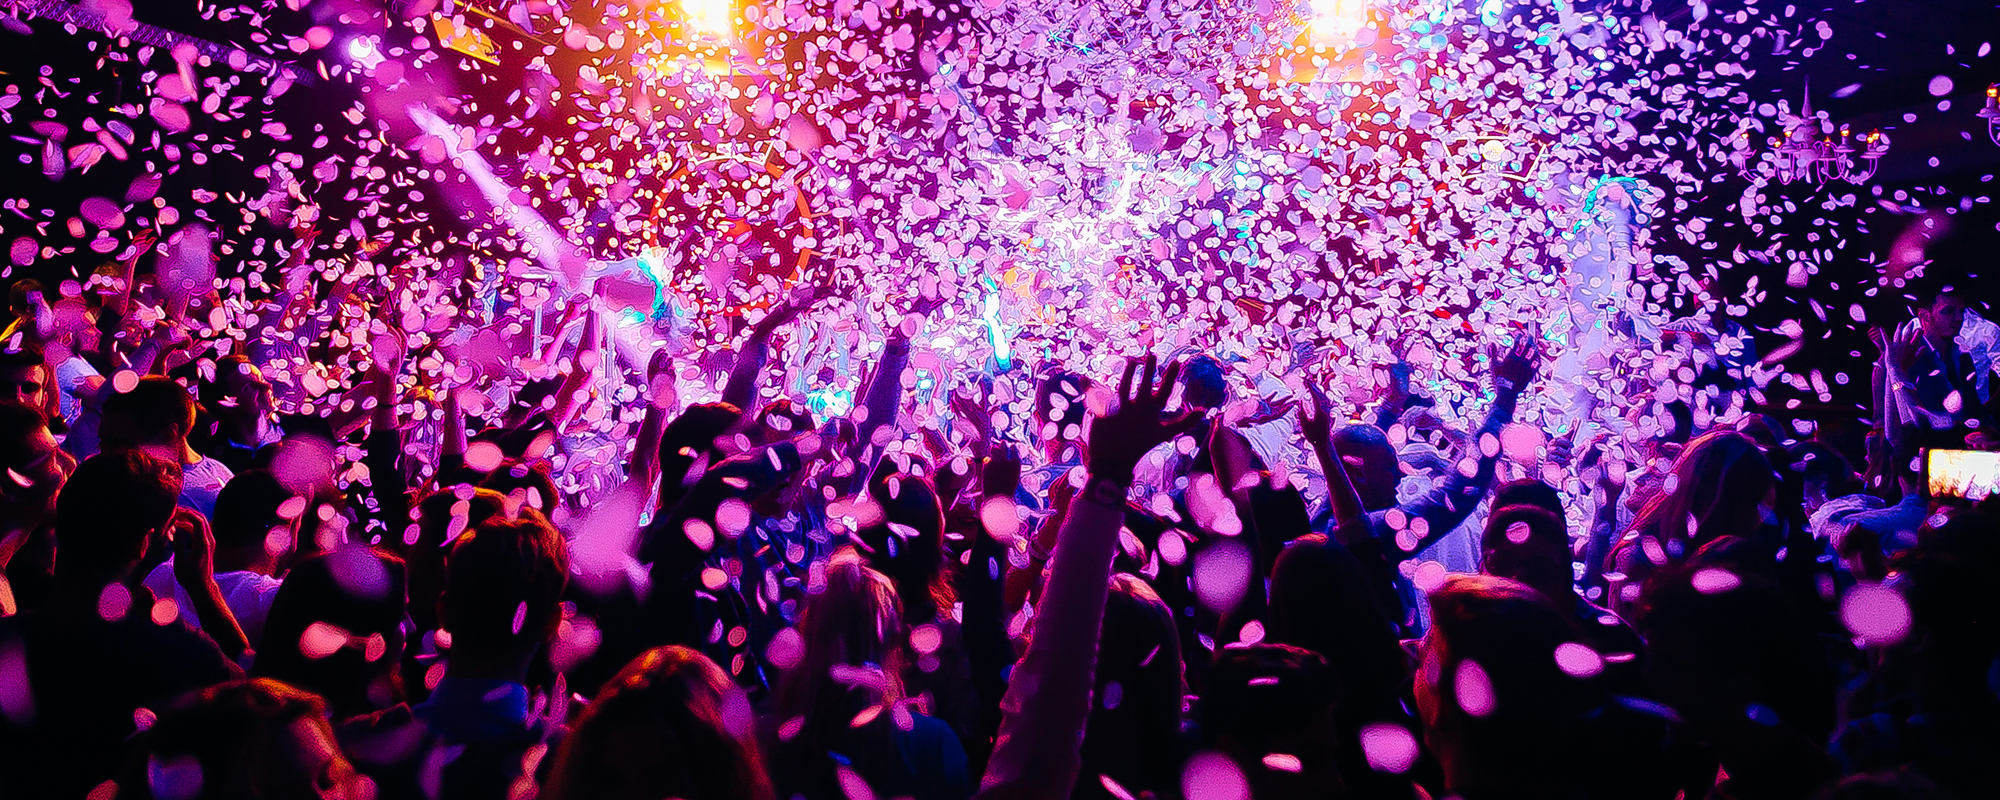 Nightclubs and venues are not seen as incubator spaces, argues Shapiro. Picture: Getty